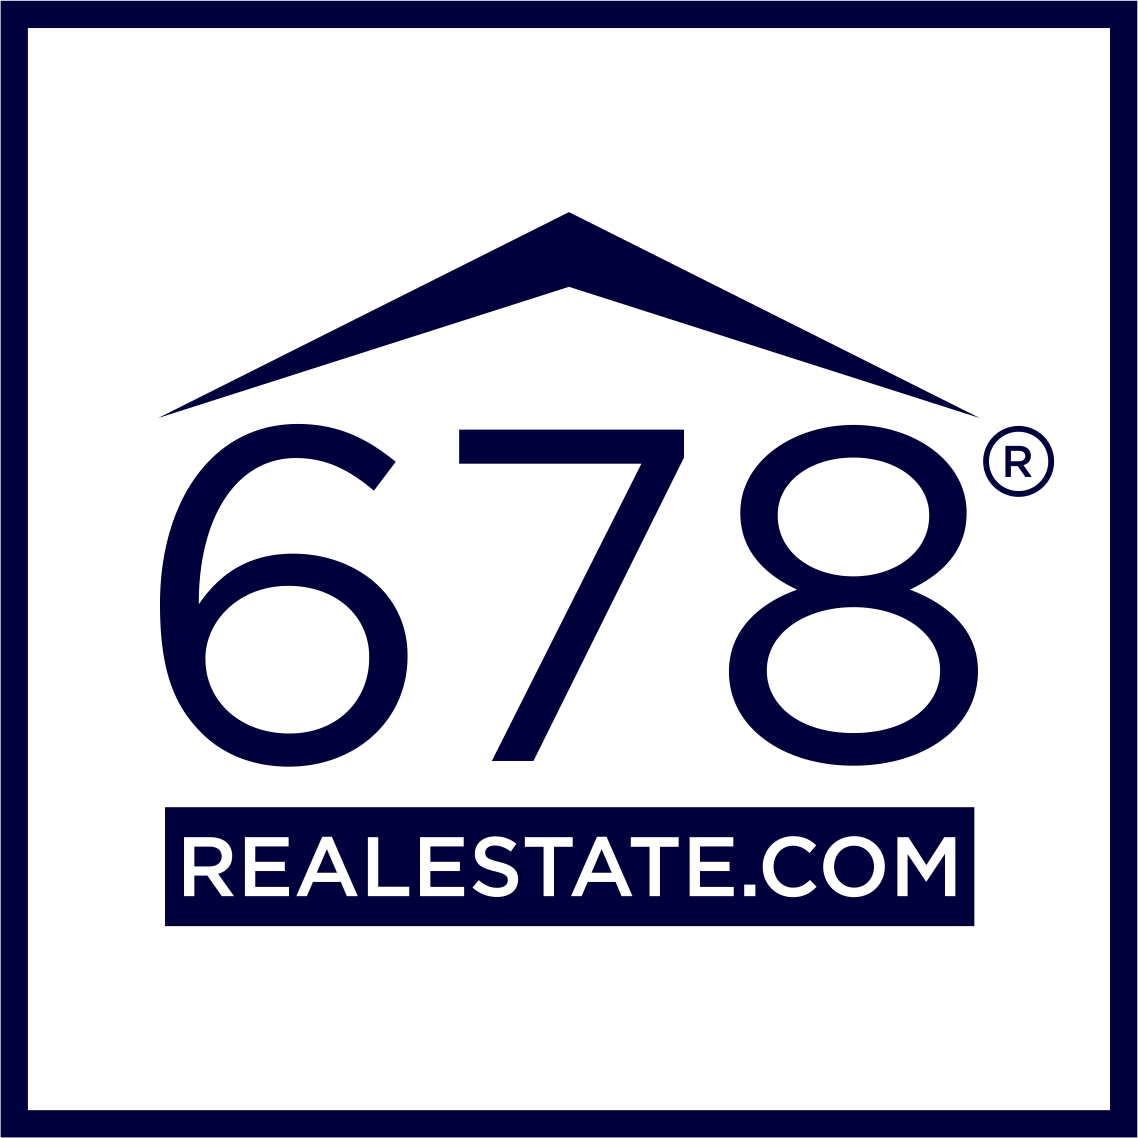 678 Real ® Estate Team brokered by eXp Realty